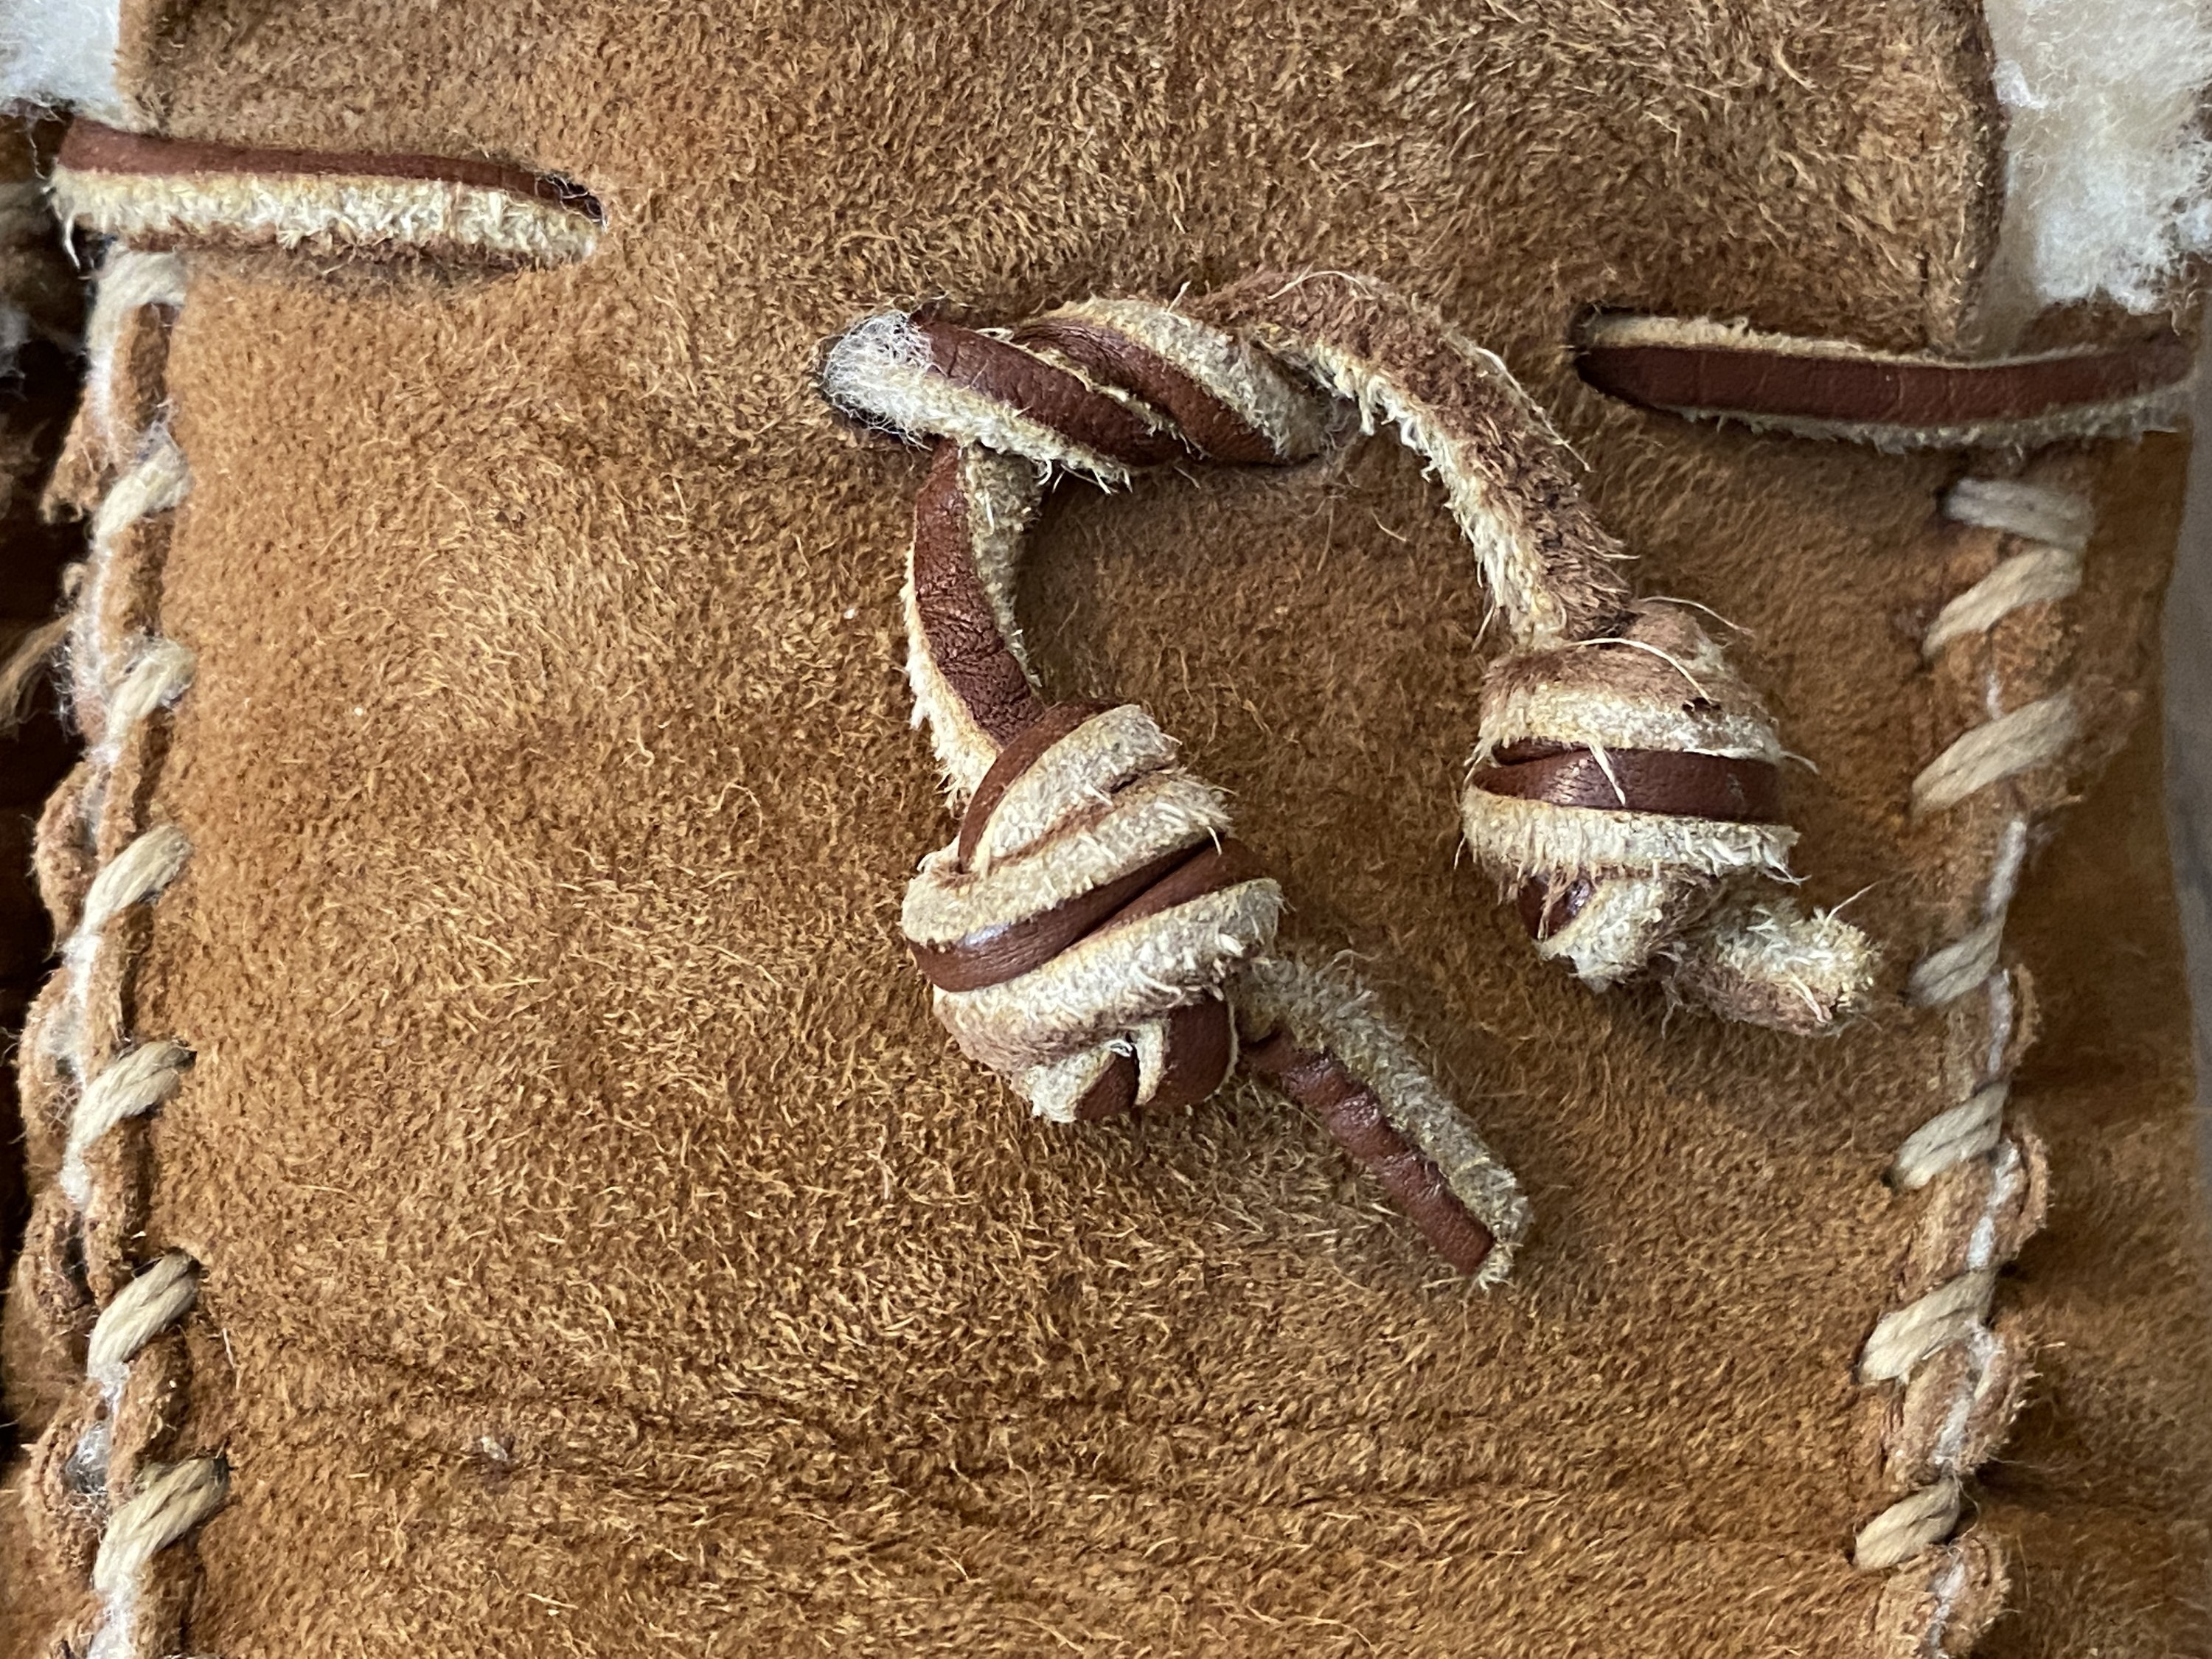 A close-up of the BuzzFeed editor's barrel knot on a moccasin